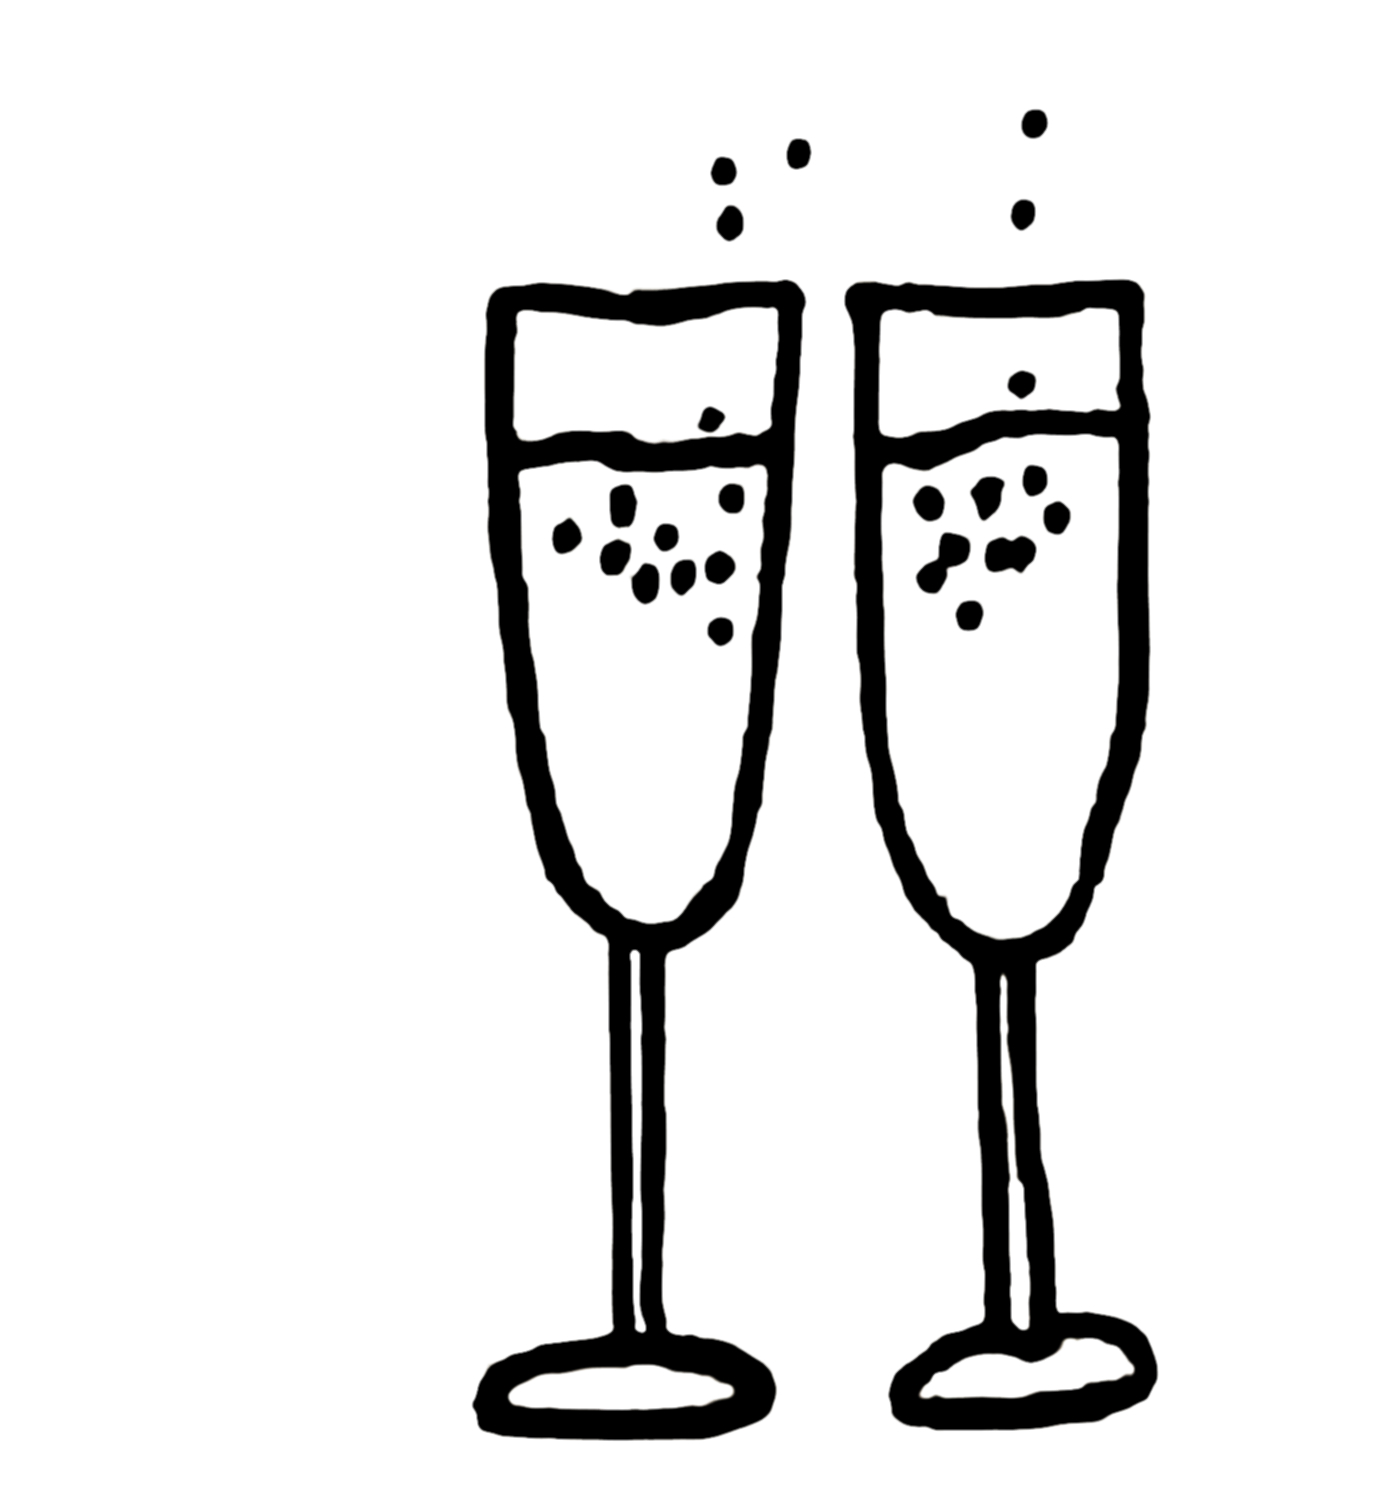 Images For Champagne Glasses Clipart-Images For Champagne Glasses Clipart-16